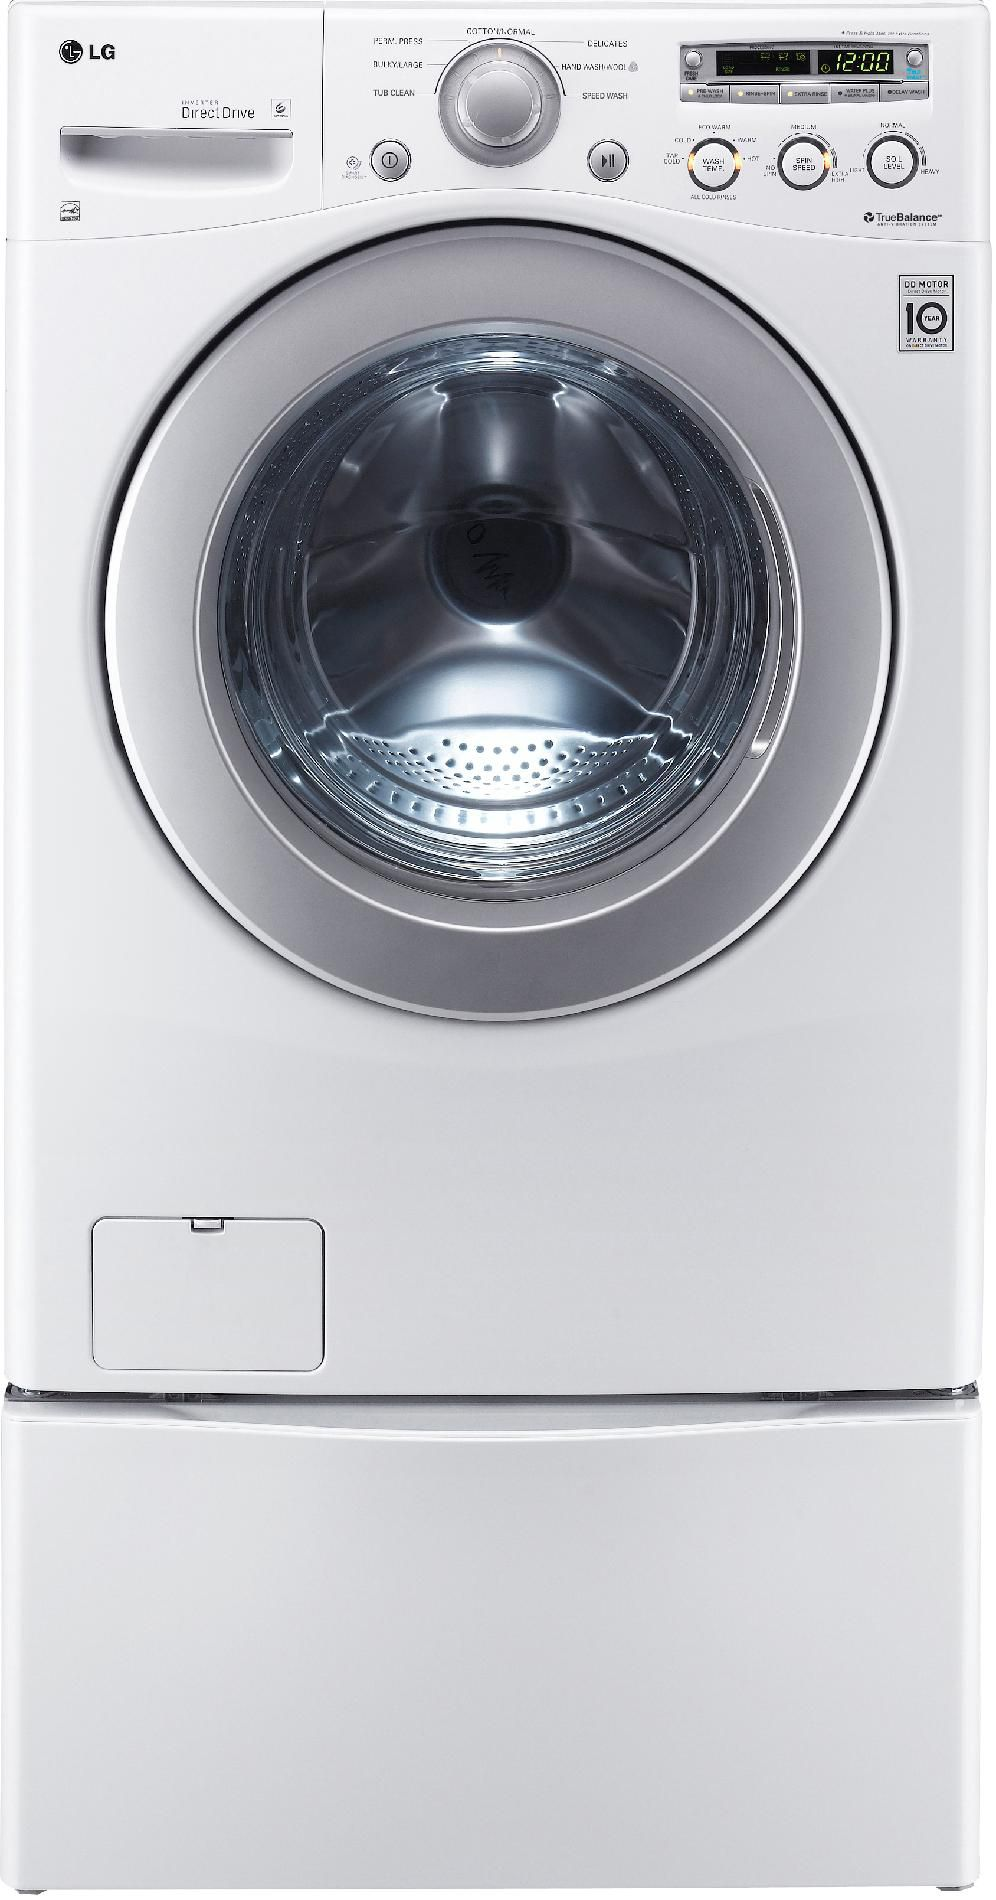 LG 3.6 cu. ft. Large Capacity Front-Load Washer - White